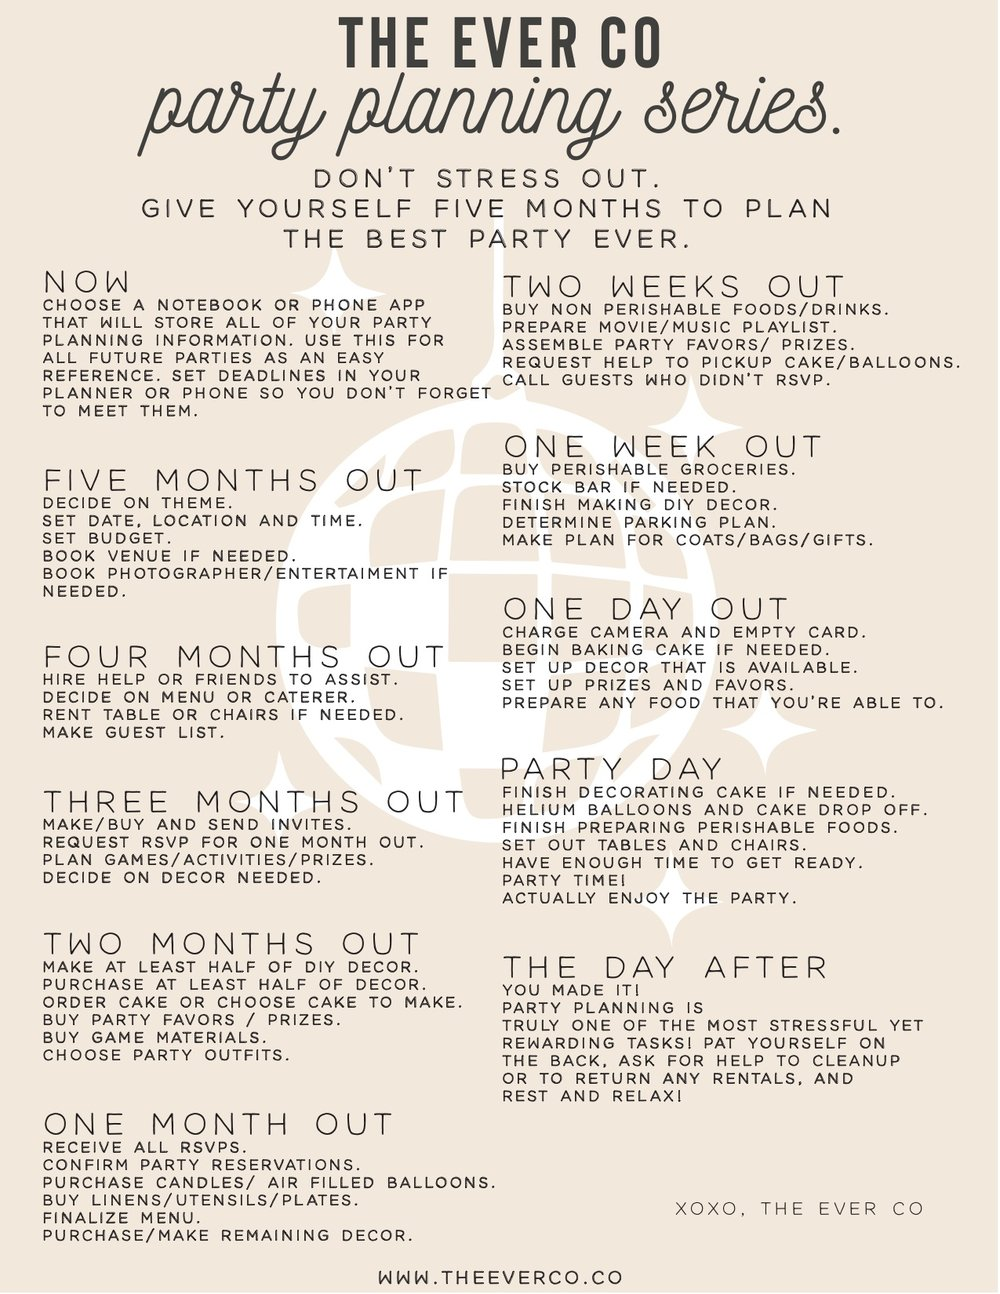 party plan checklist copy.jpg